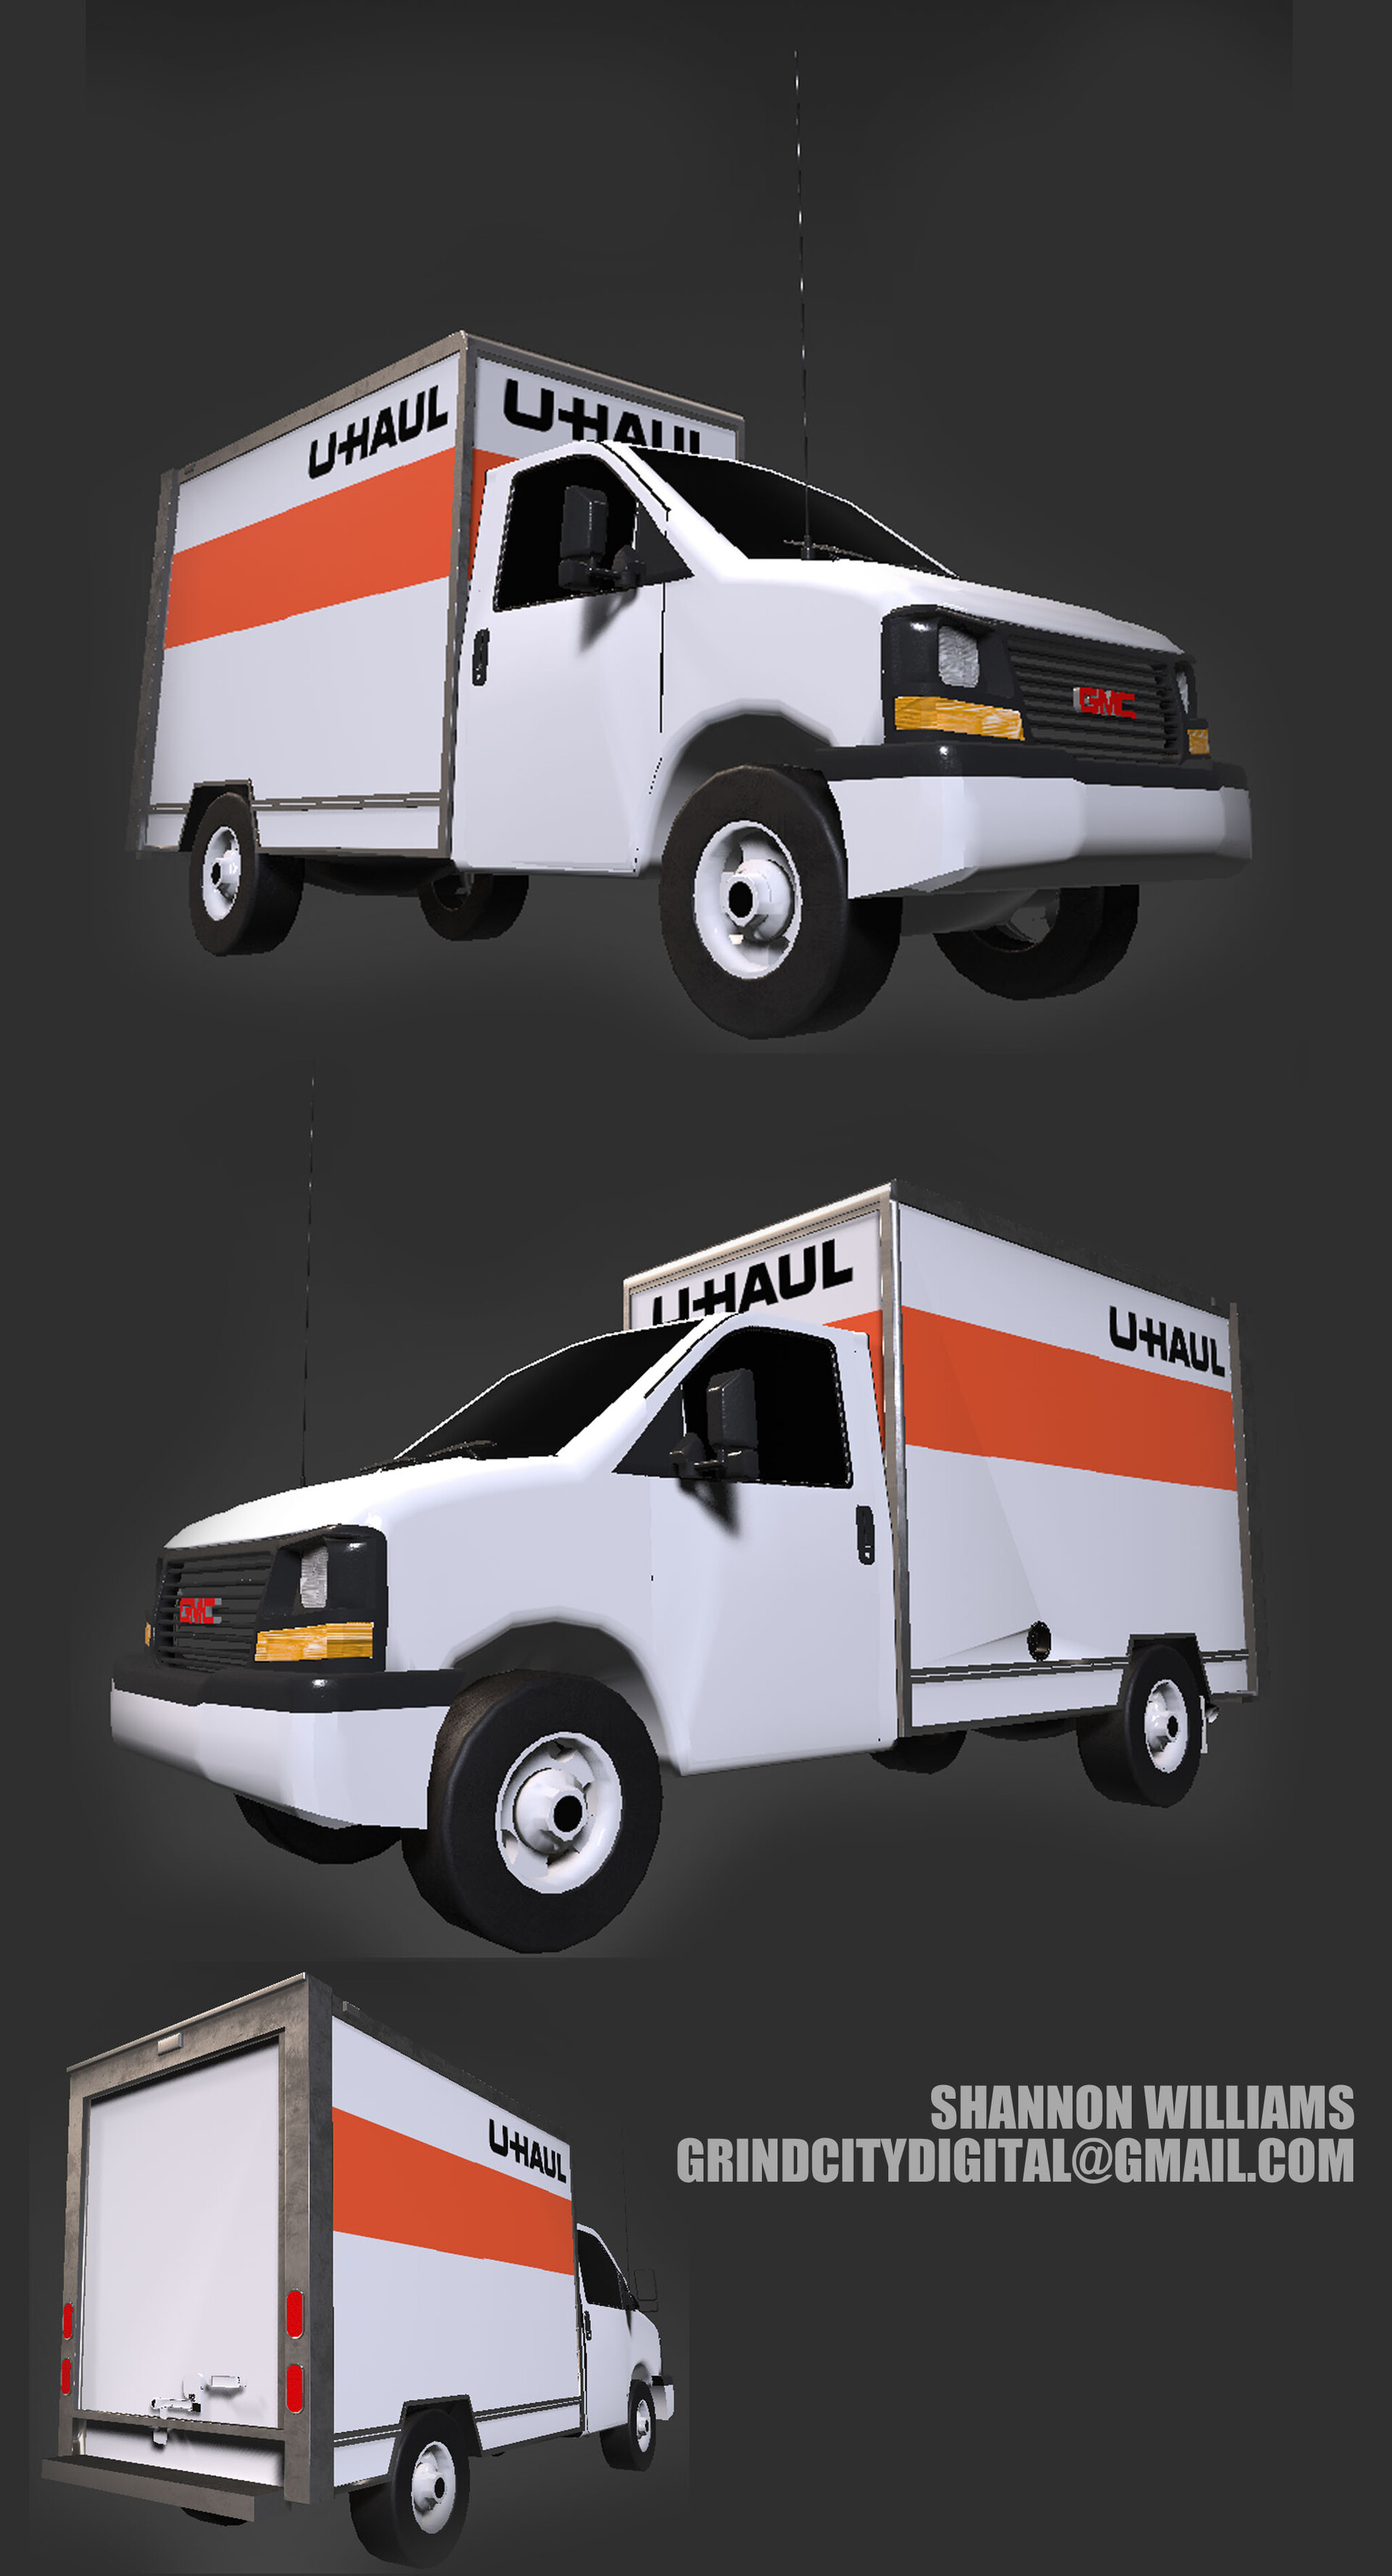 This is what the truck looks like in Substance Painter. Notice the difference on the base of the truck and windshield wipers.